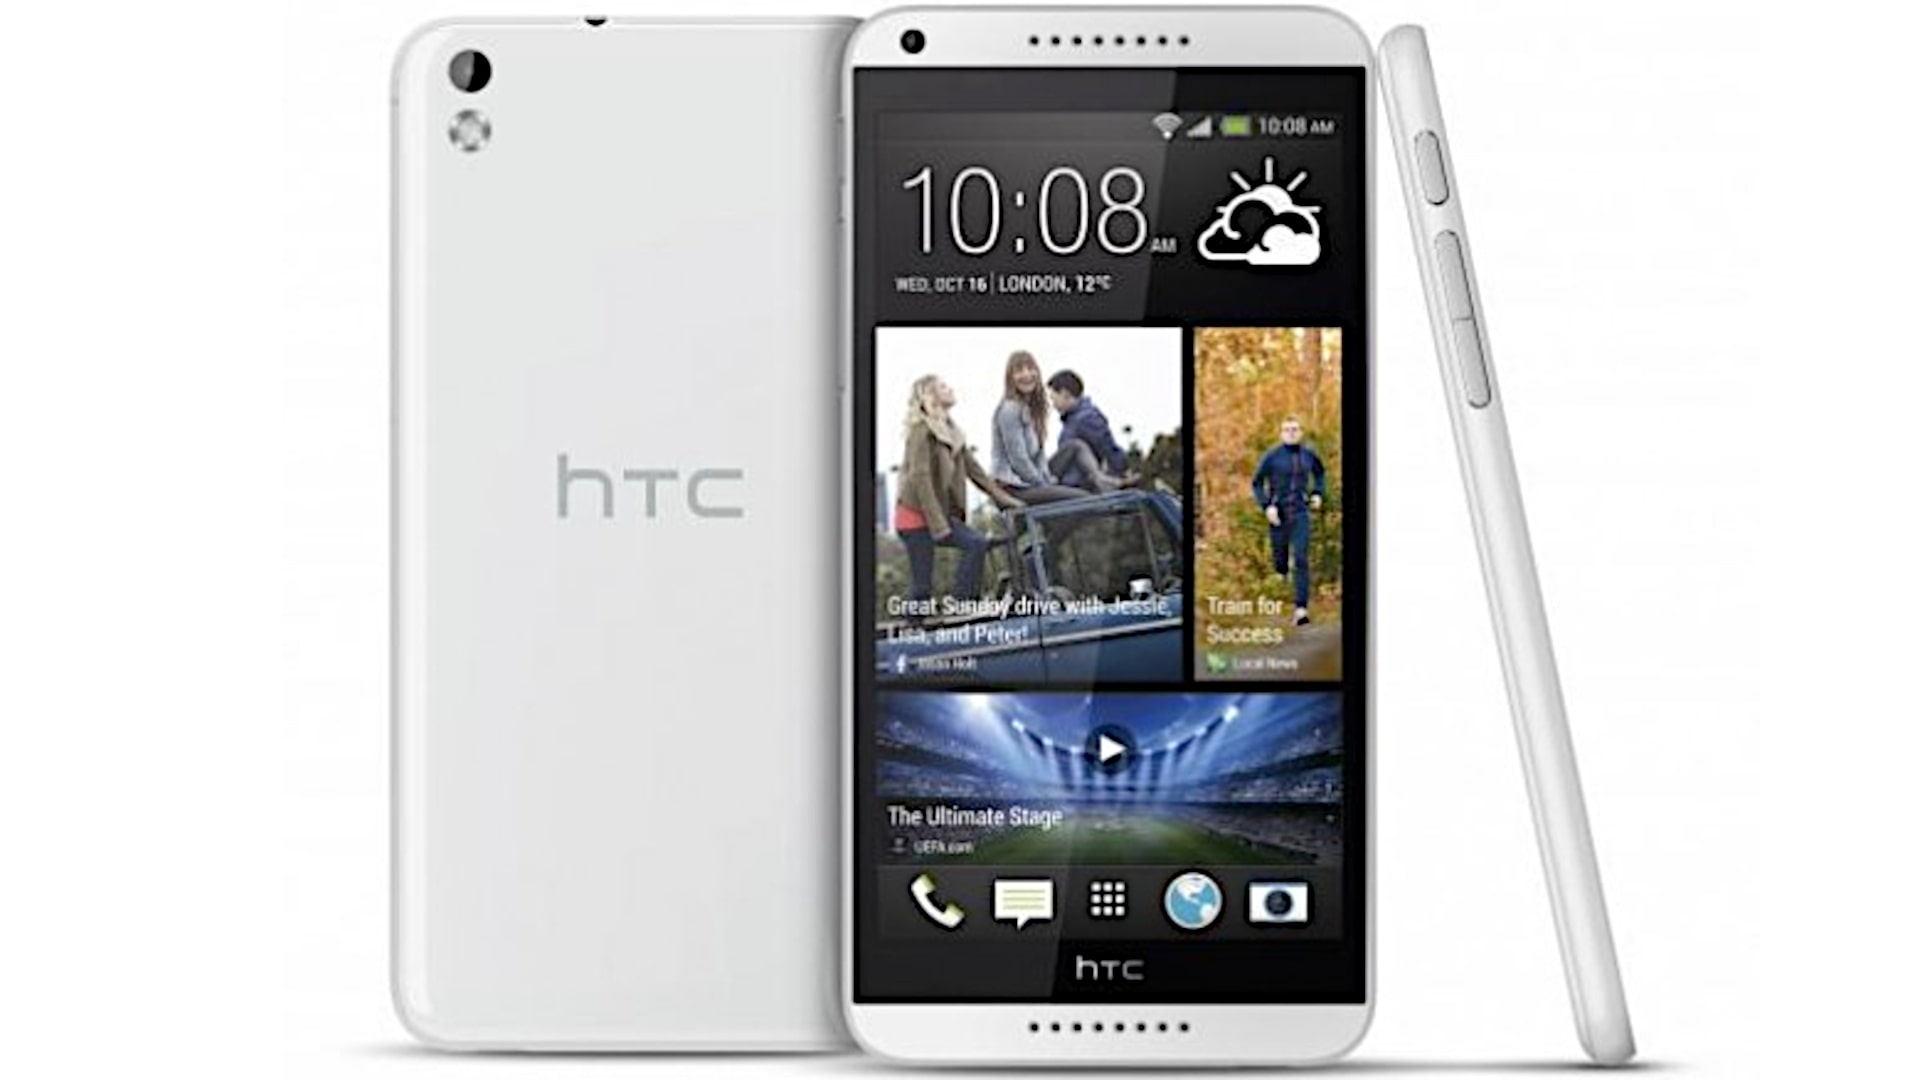 HTC 816 and HTC 610 Review